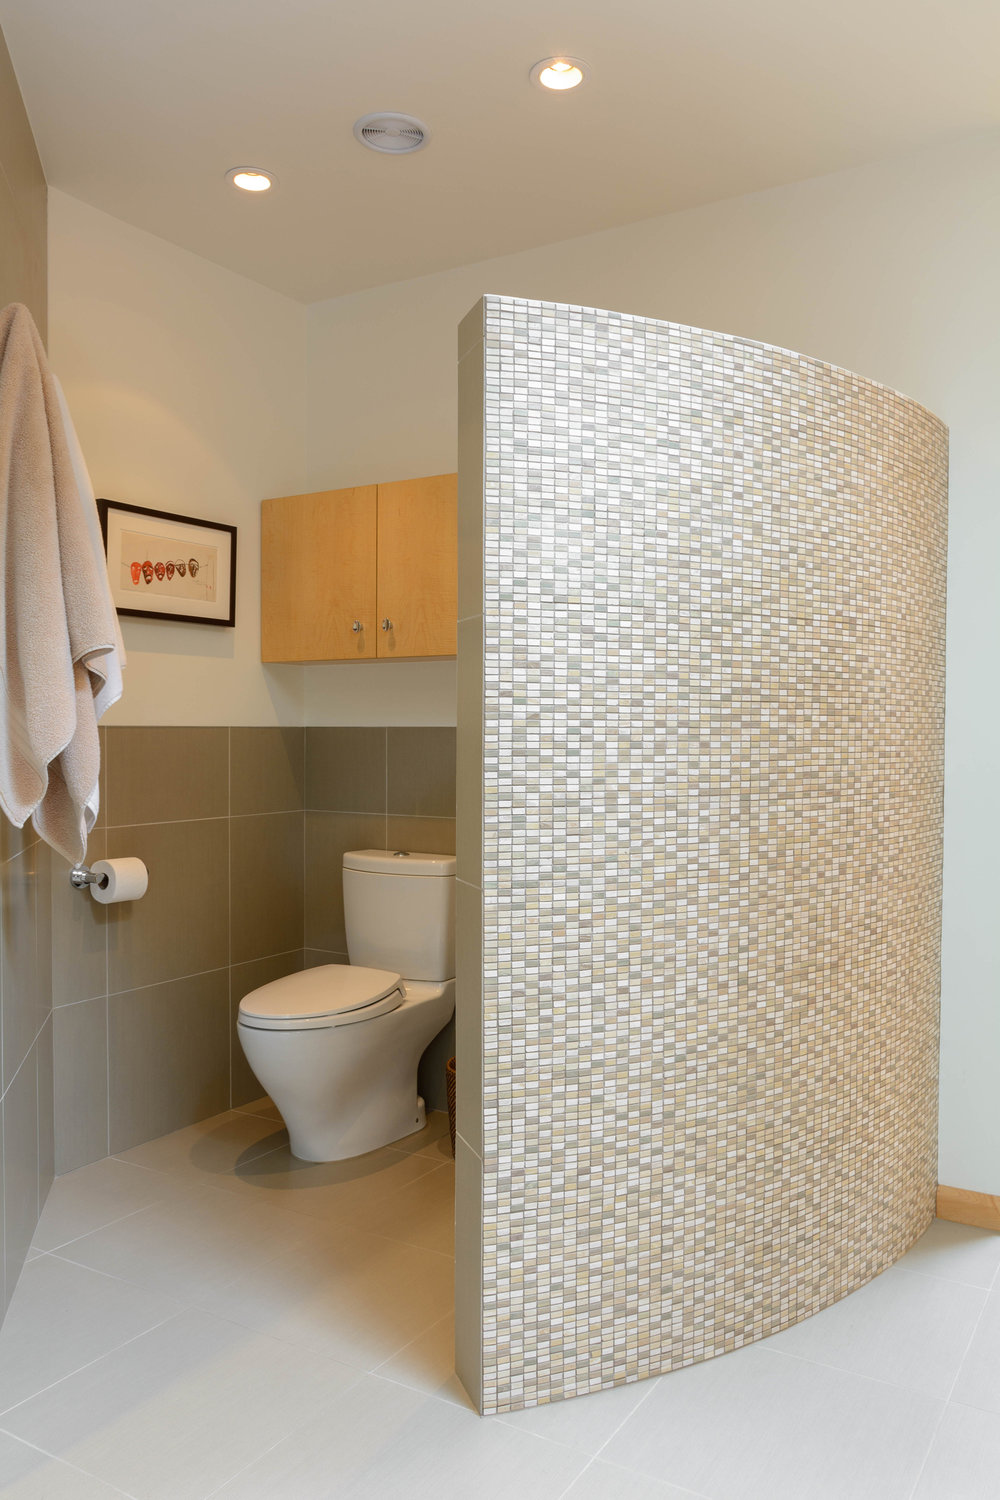 This tiled curved privacy wall separates the water closet and bidet from the rest of the master bathroom